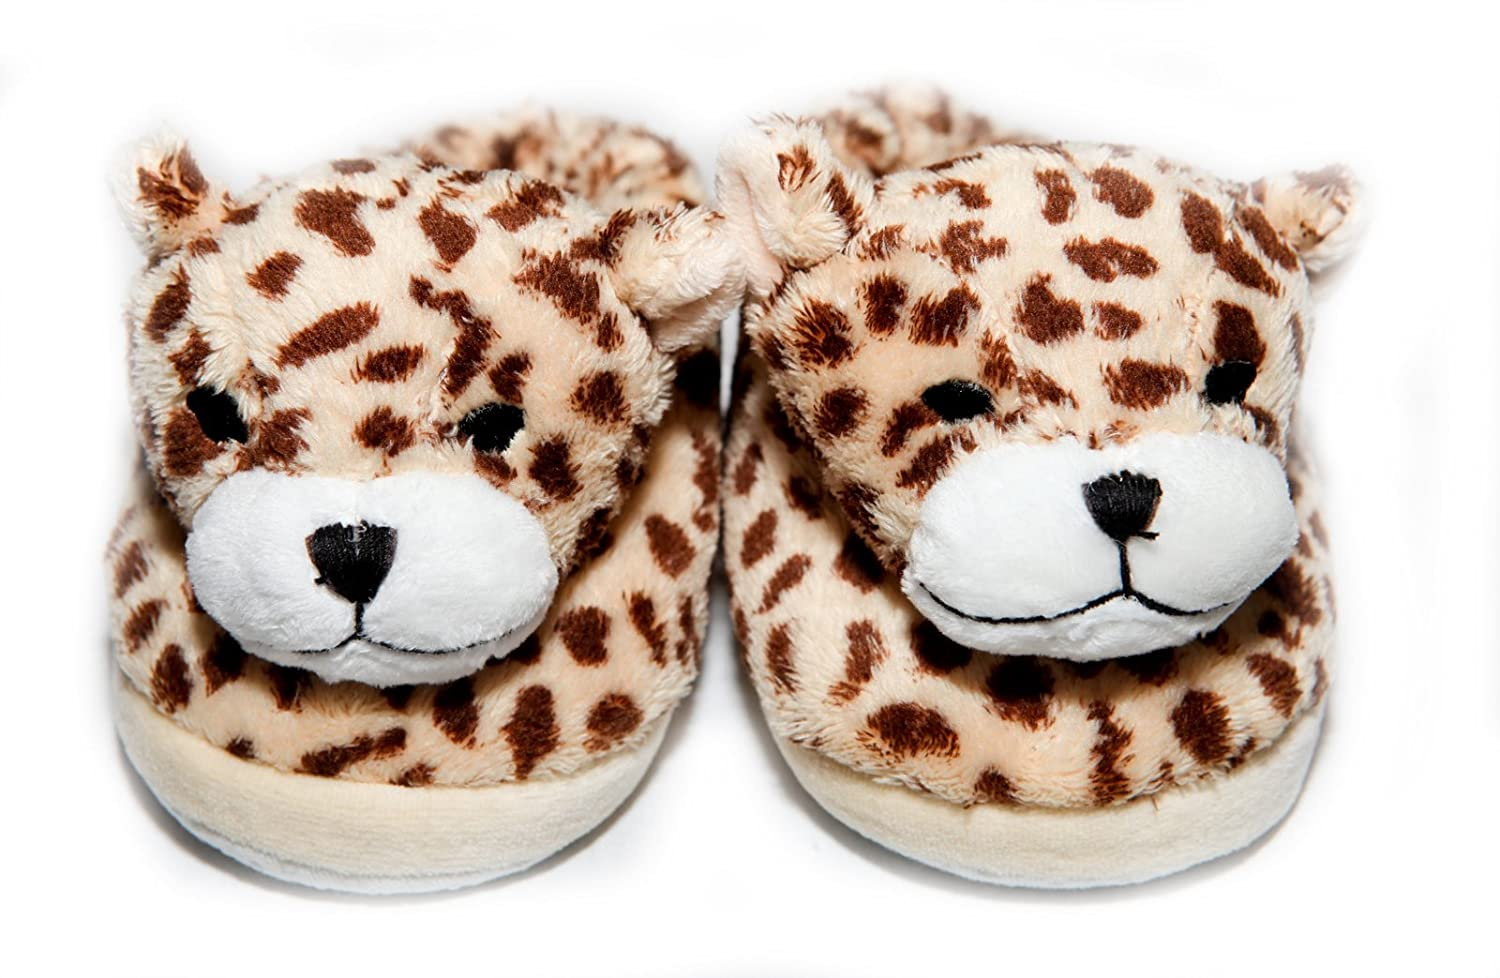 dc12e9e05 Amazon.com: The Babymio Collection Slippers, Chichi The Cheetah, 24 Months:  Baby